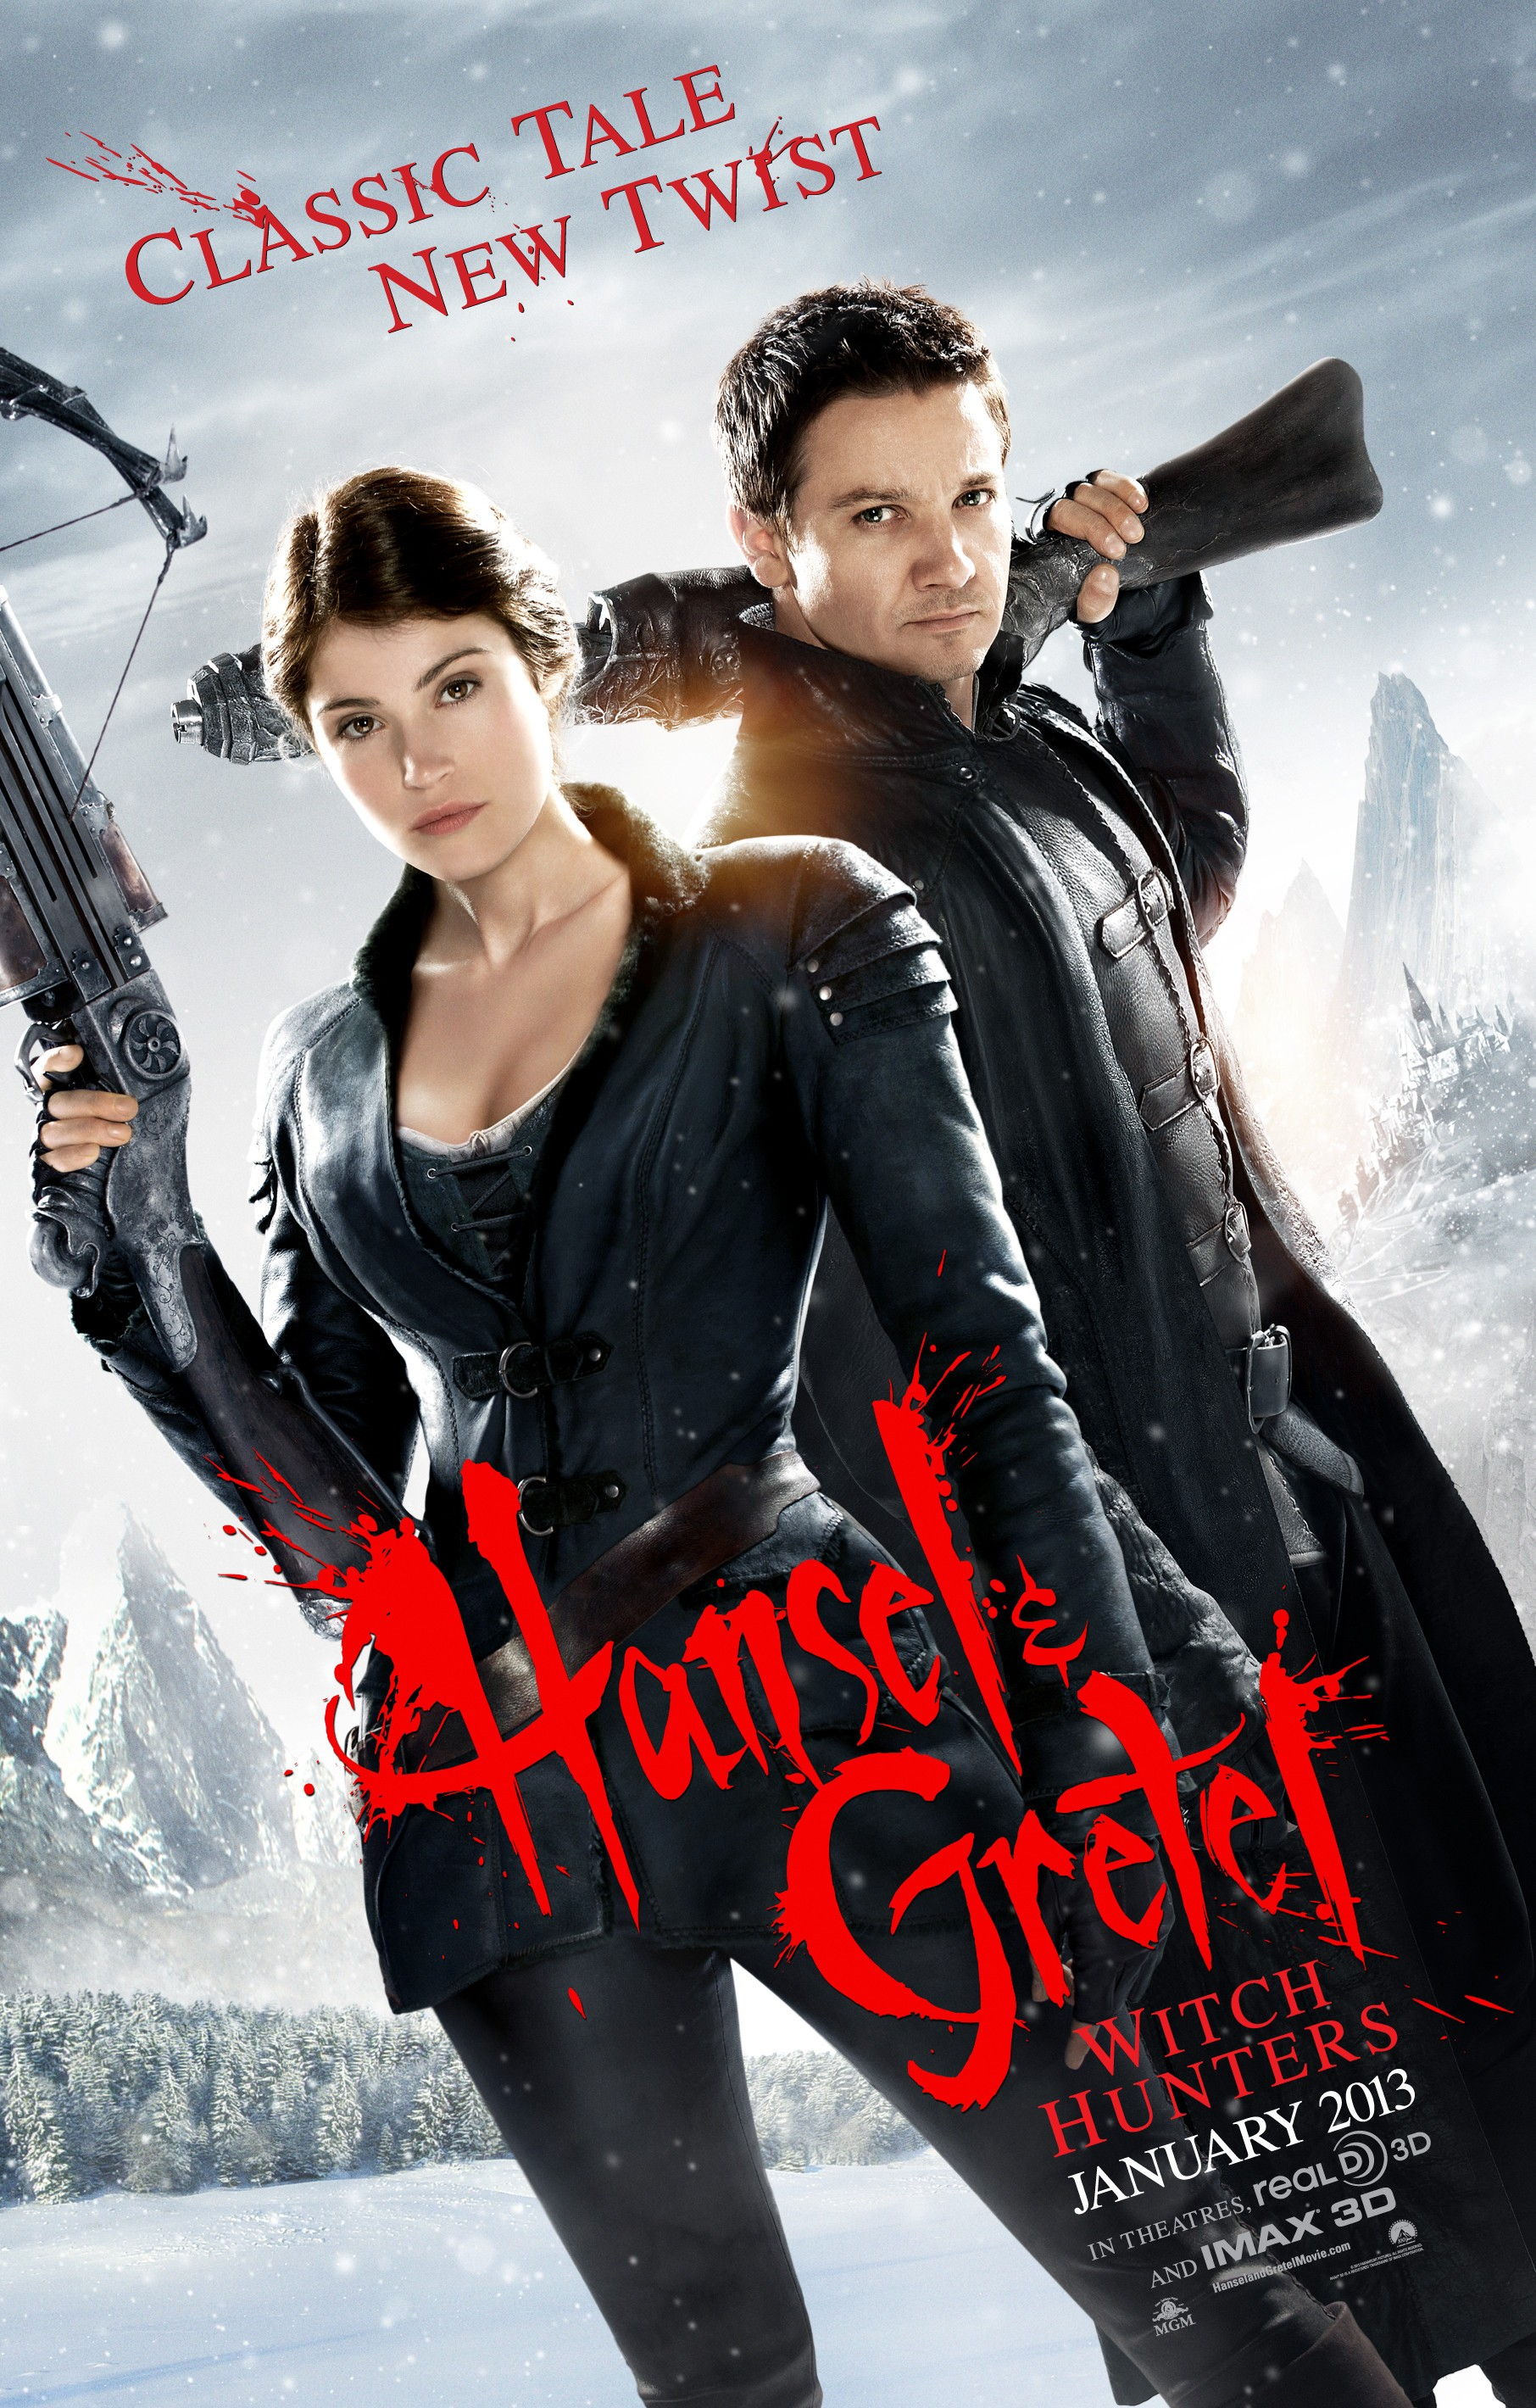 Film : Hansel and Gretel - Wtch Hunters (2013)